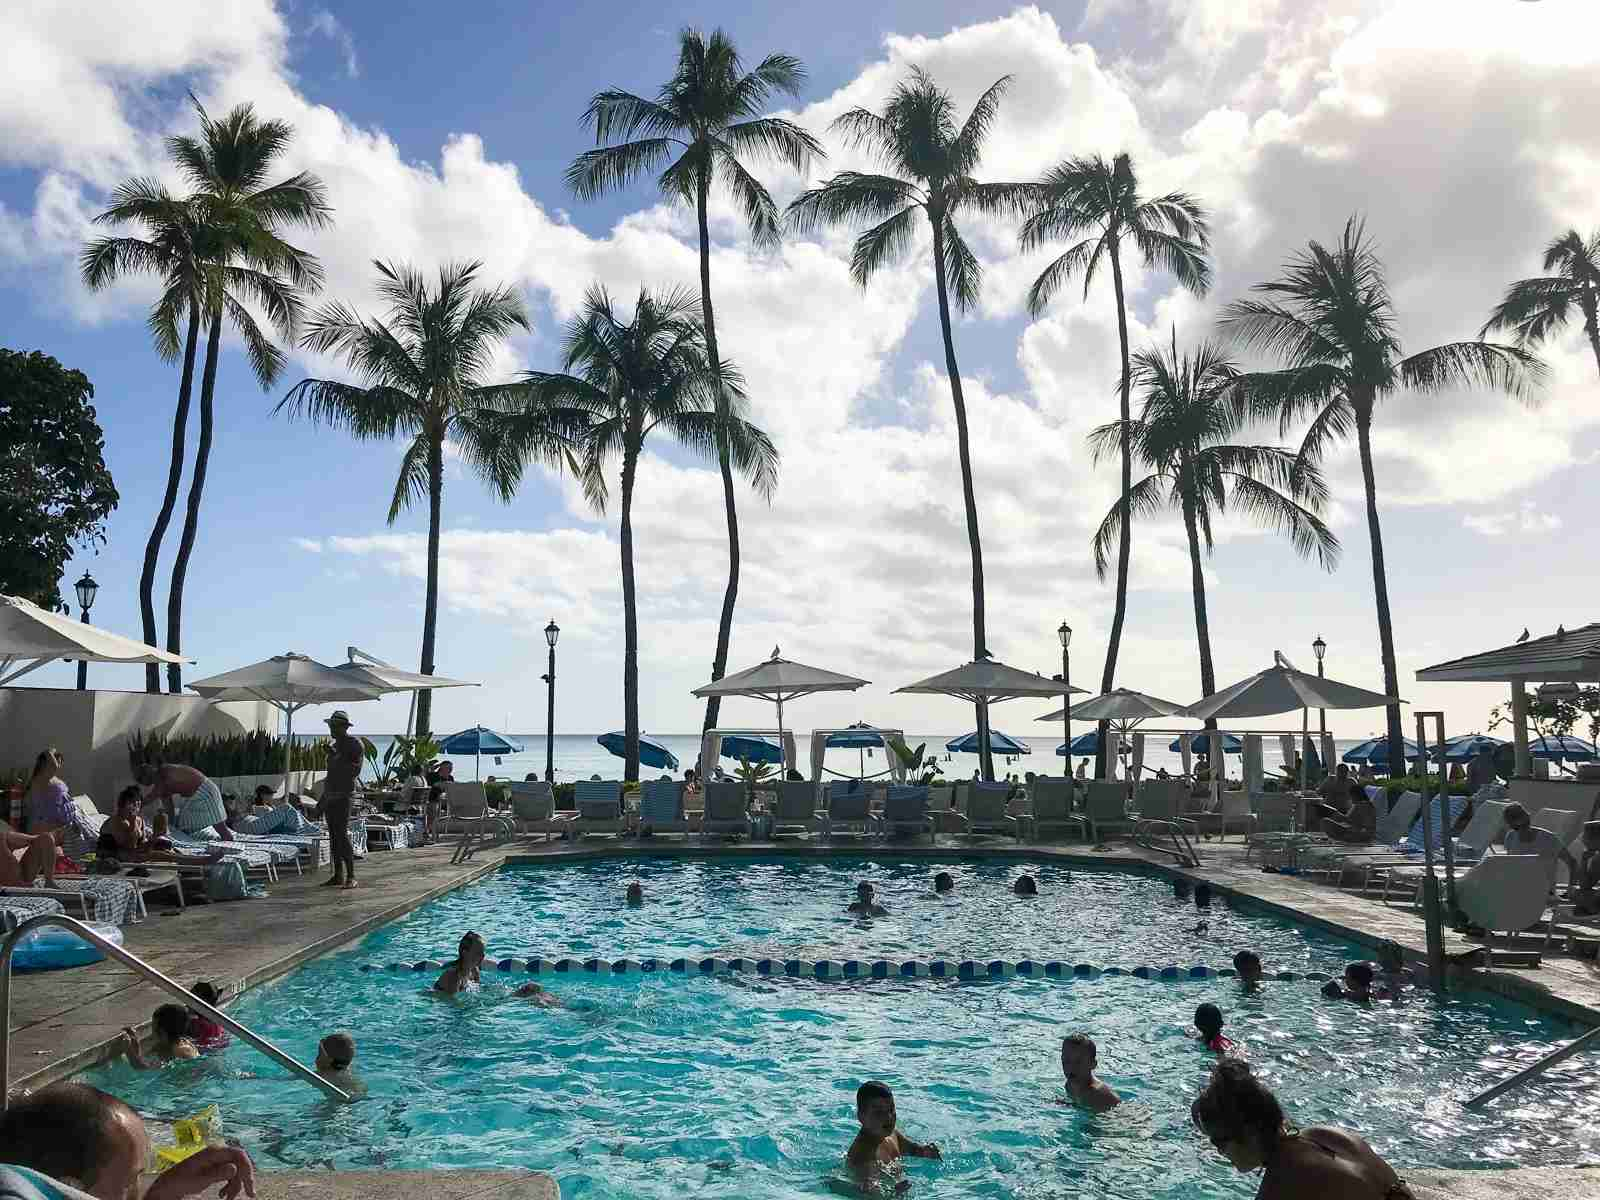 The pool at the Moana Surfrider Hawaii. (Photo by Samantha Rosen/The Points Guy)